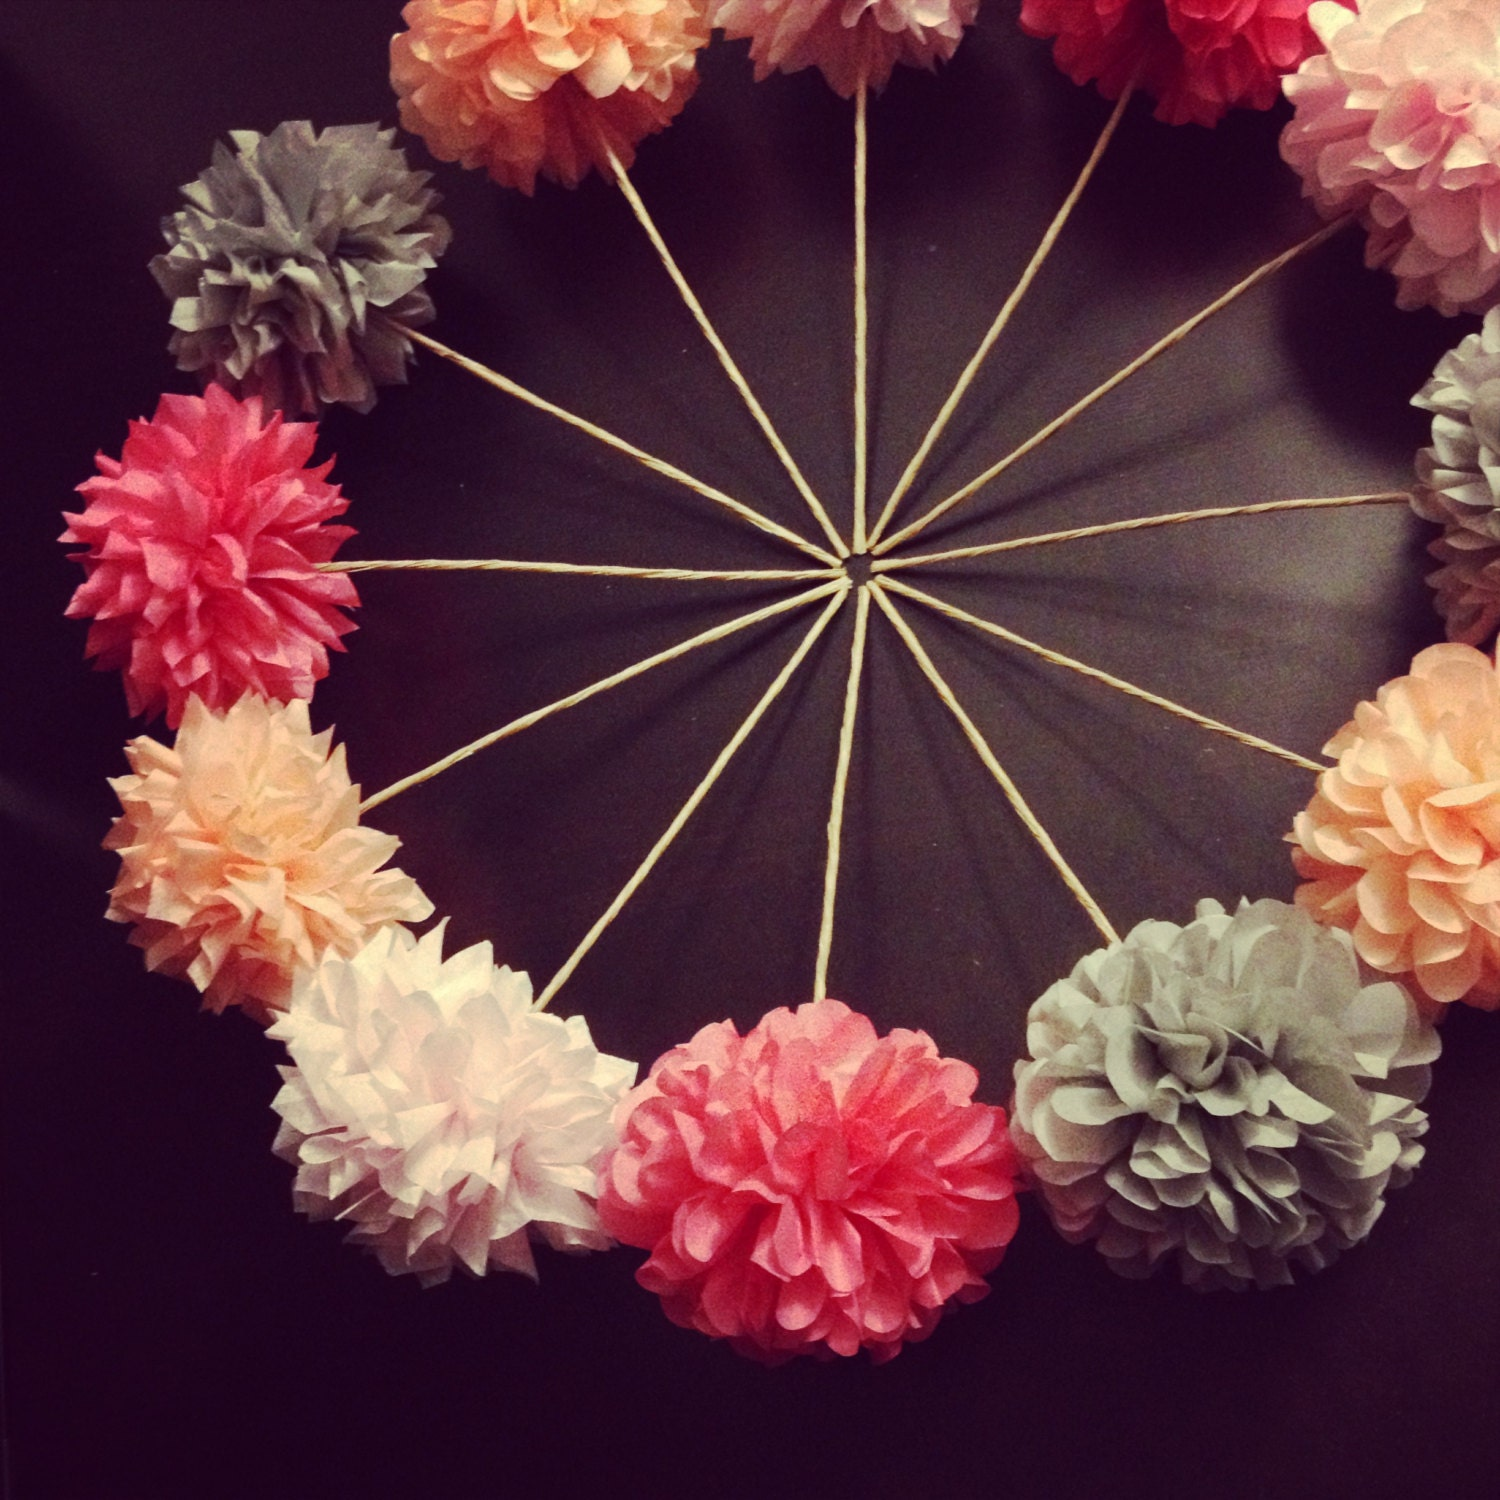 Diy pom flowers 10 count wedding decorations table for Decoration with flowers